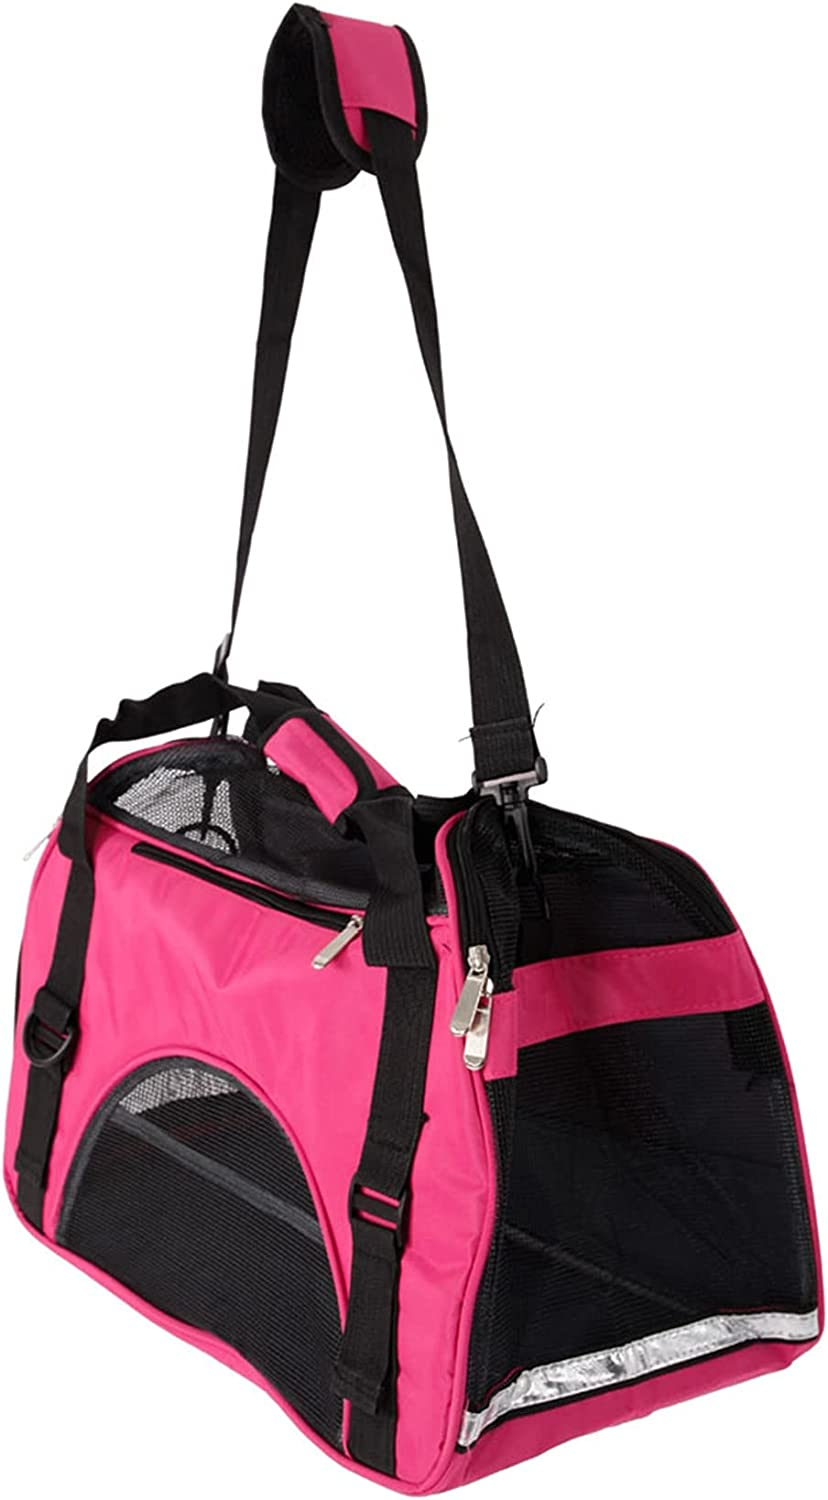 Xcasso Pet Travel Bag Safe and Easy Hollo for Cats trust Tampa Mall Dogs